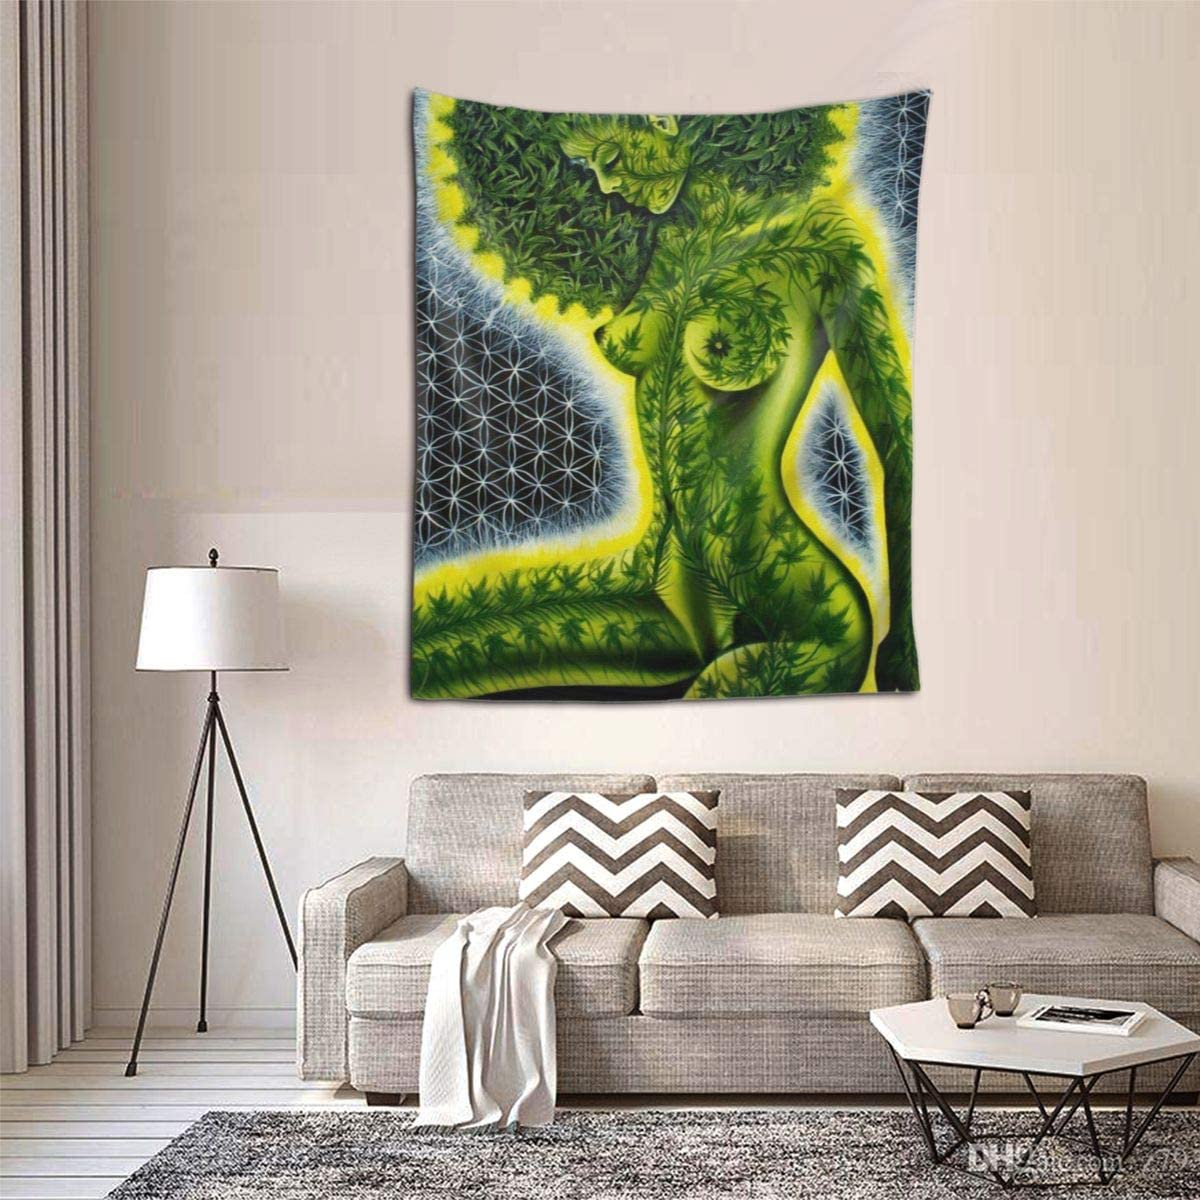 African American Women Beauty Green Marijuana Weed Leaf Wall Tapestry Hippie Tapestry Wall Hanging Home Decor Extra Large tablecloths for Bedroom Living Room Dorm Room